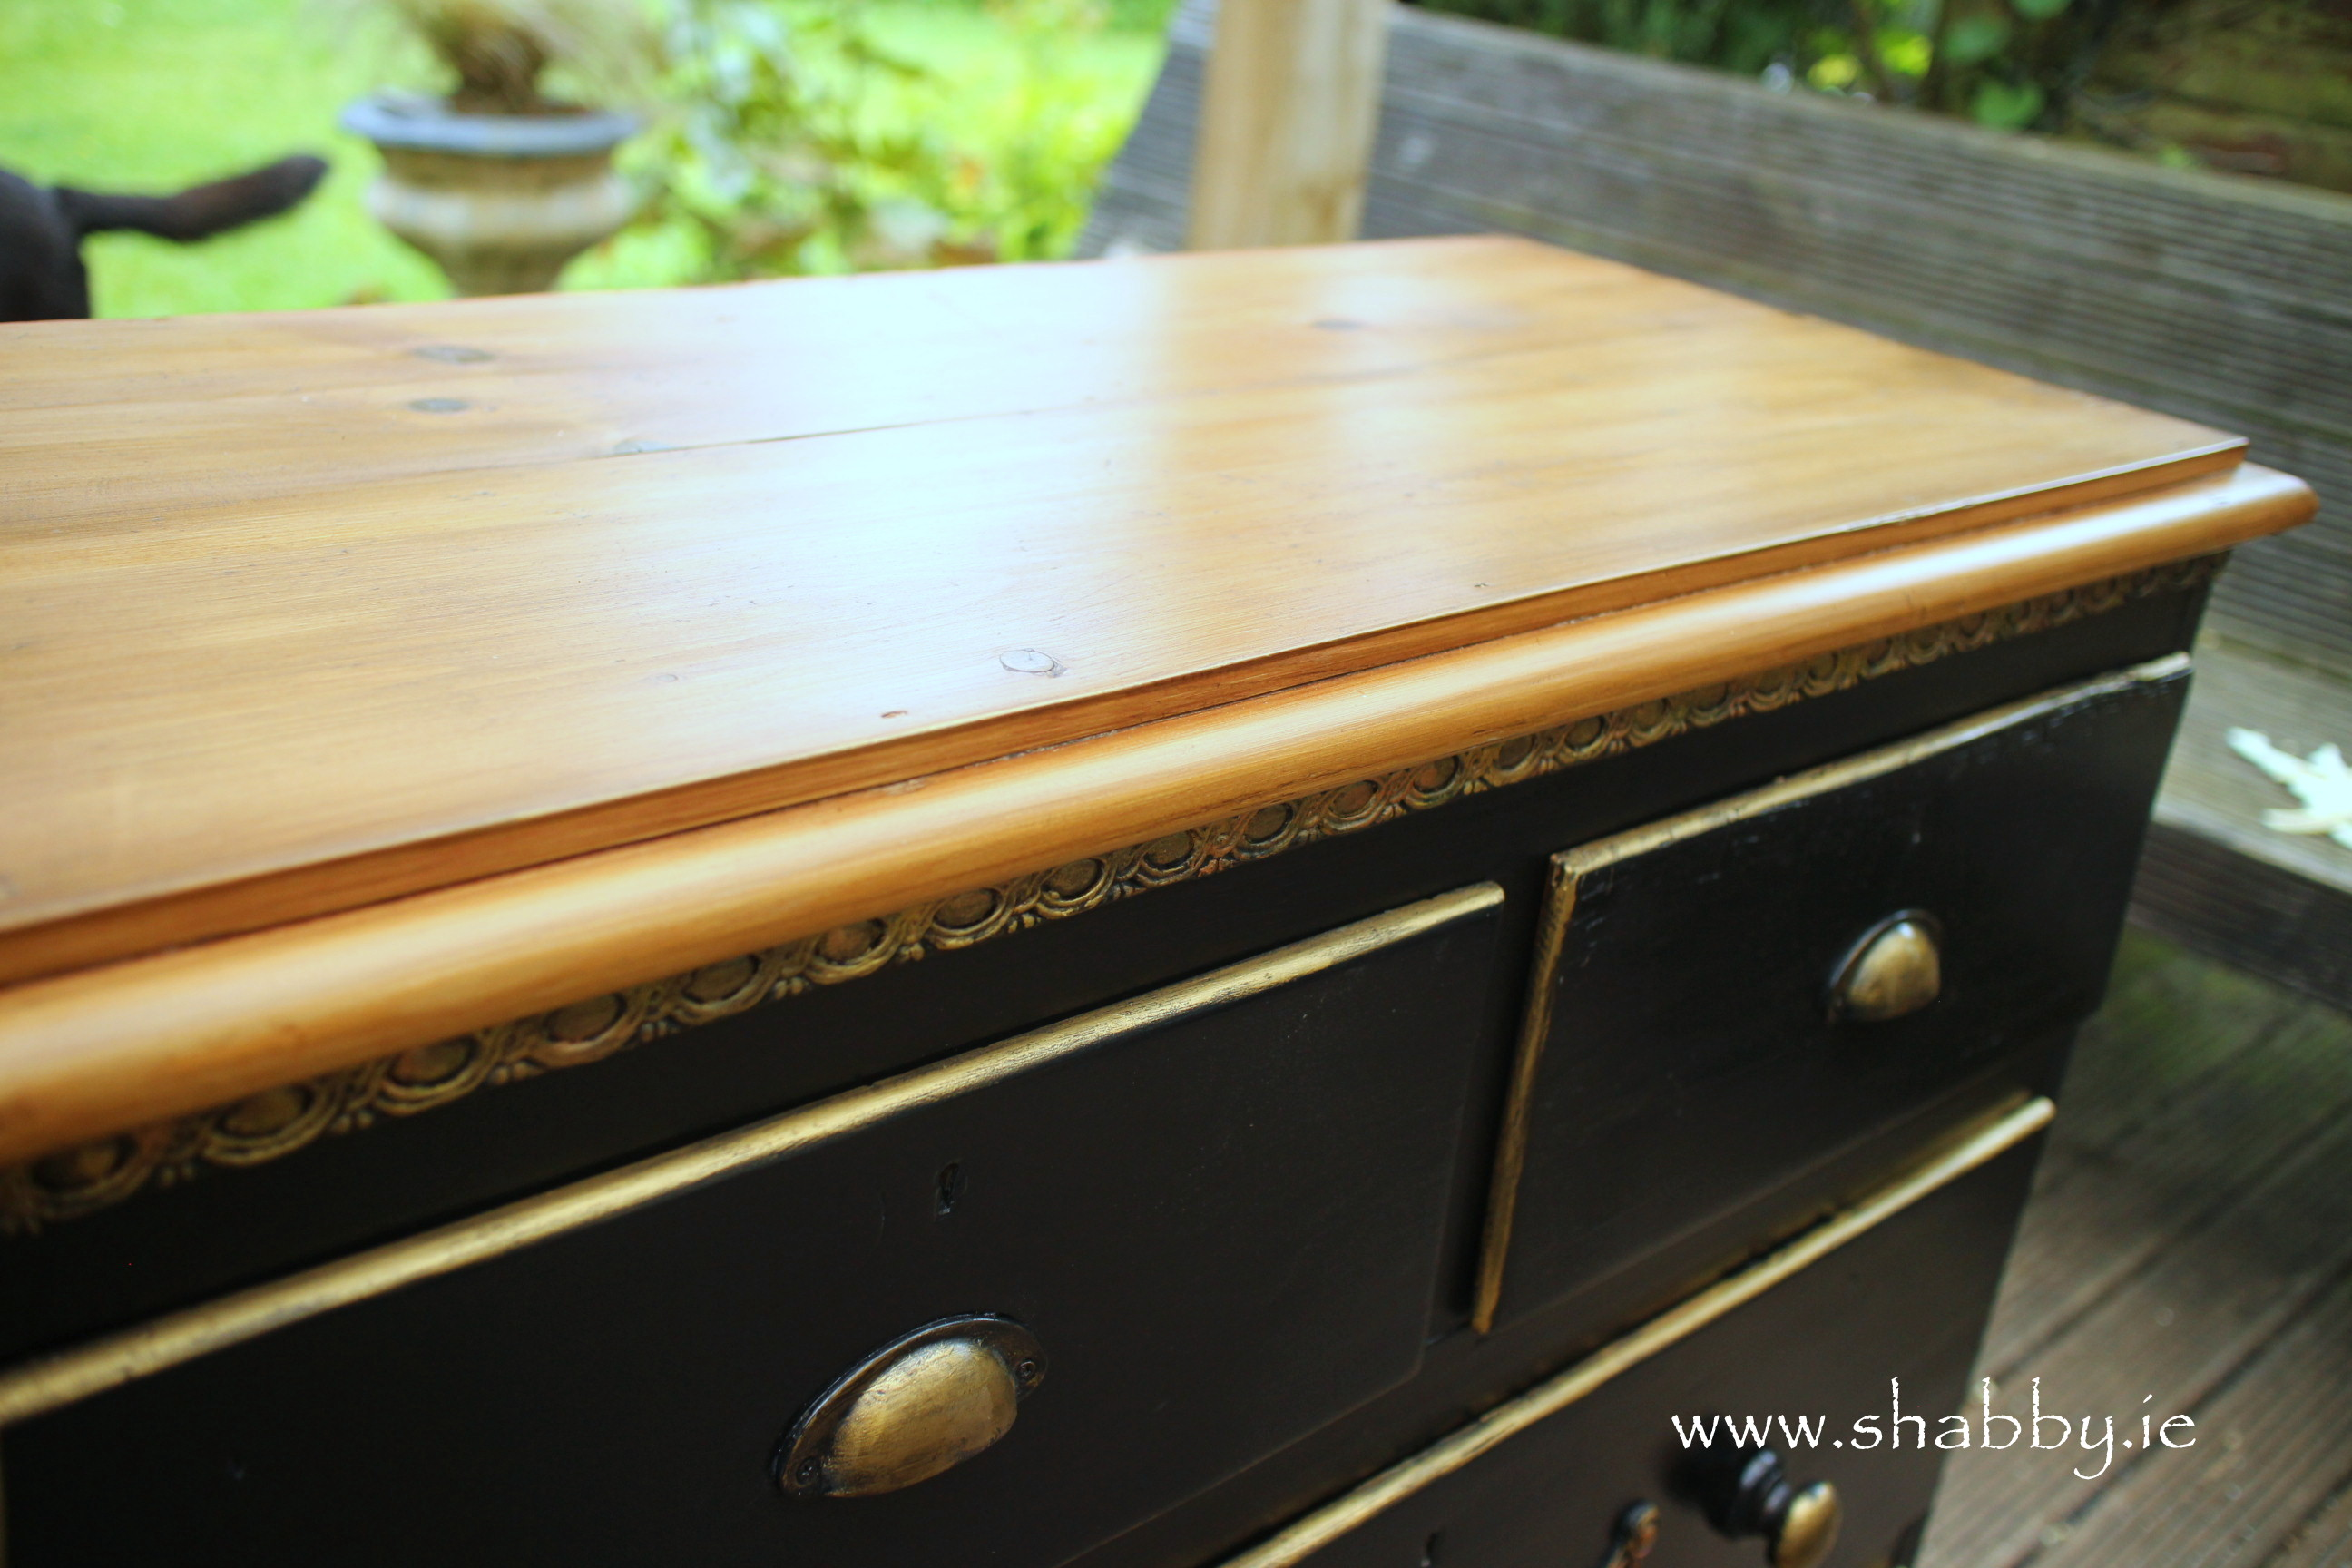 Removing WAX and preparing wood for Staining